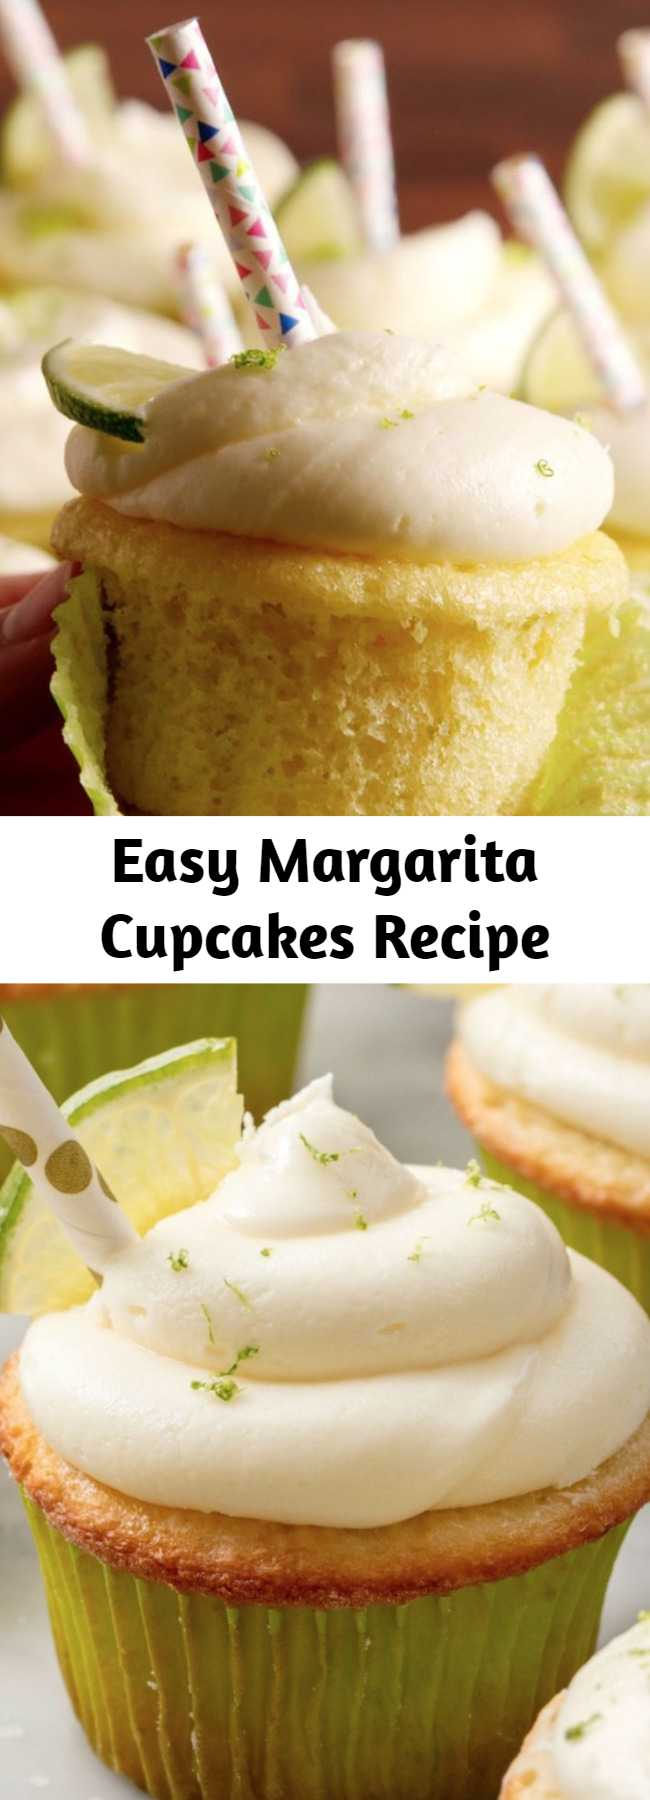 Easy Margarita Cupcakes Recipe - Check out this easy recipe for the best margarita cupcakes! Everything's better in cupcake form!